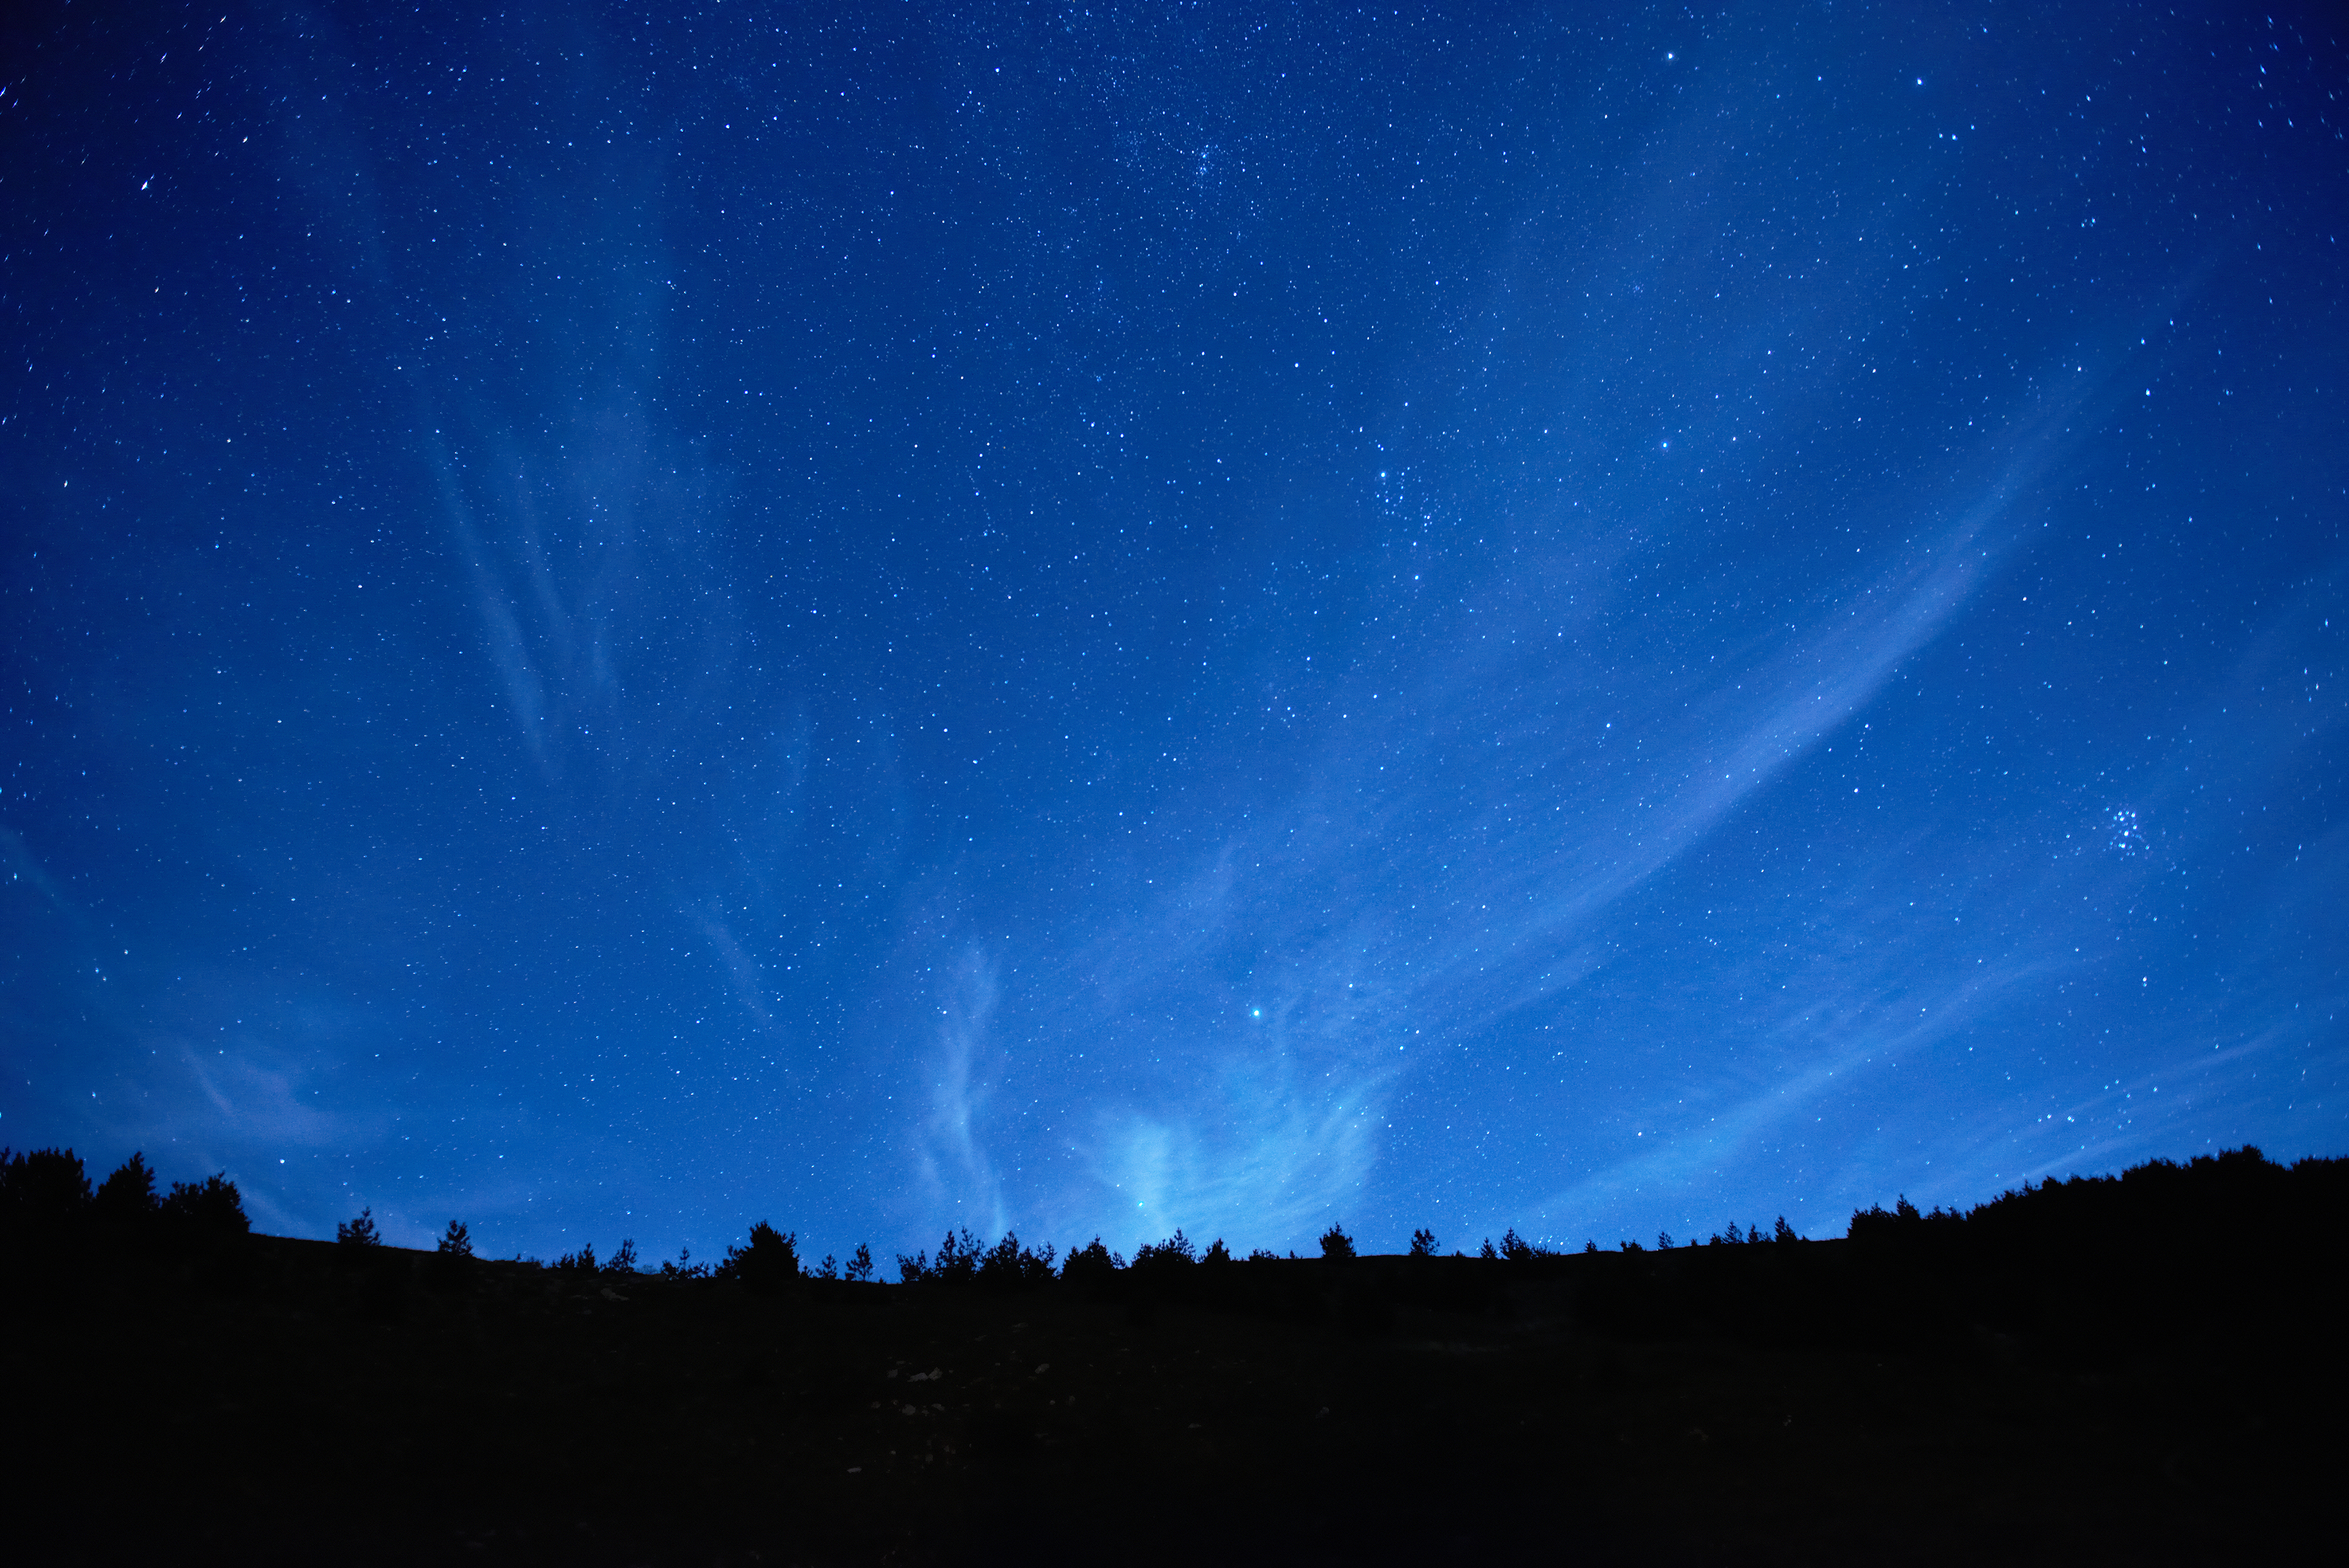 A horizon showing an electric blue night sky with stars and a line of trees seen as a black shadow in front